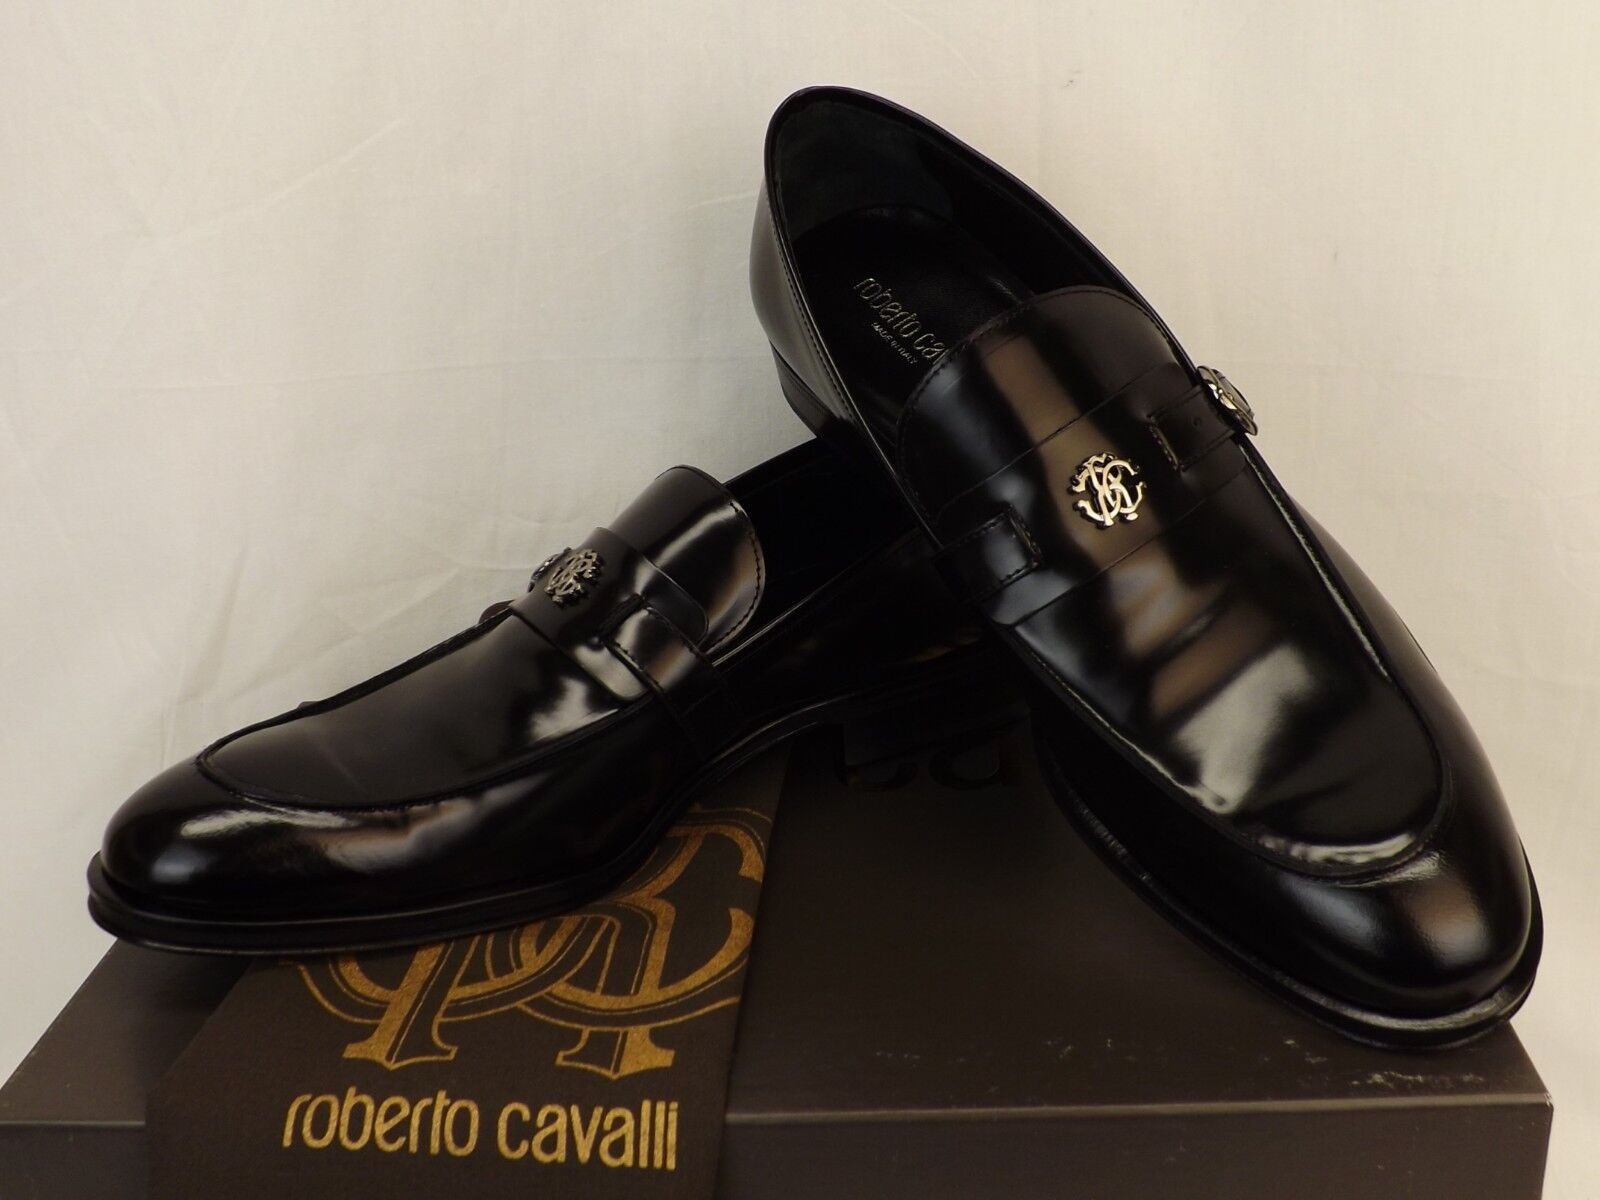 NIB ROBERTO CAVALLI nero LEATHER BELTED BUCKLE LOGO LOAFERS 9 US 42 ITALY